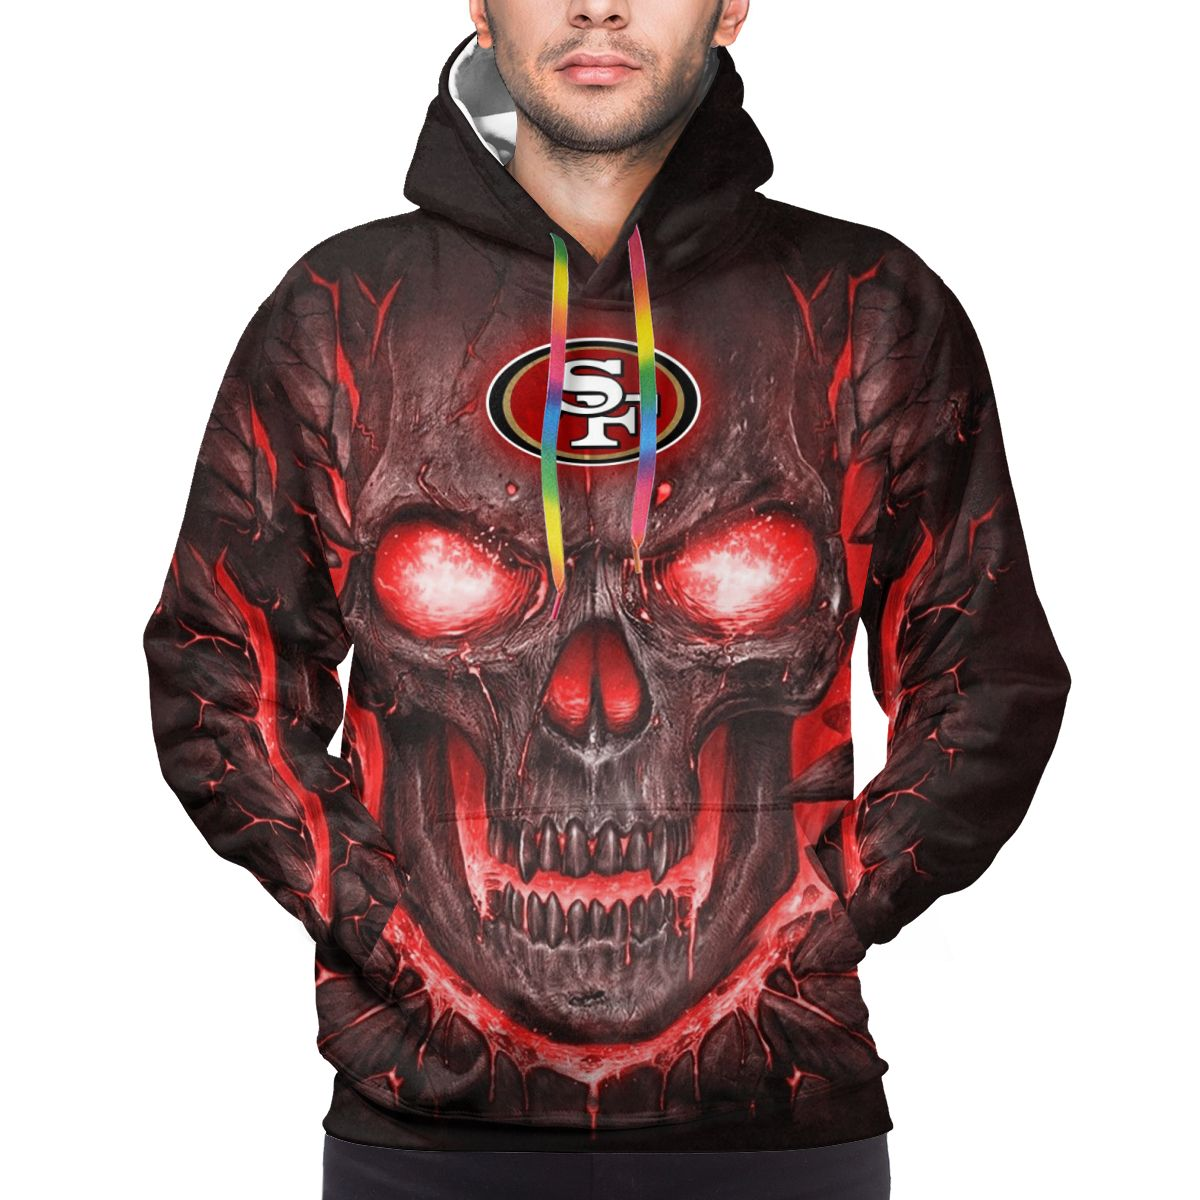 49ers Skull Lava Logo Print Hoodies For Men Pullover Sweatshirt